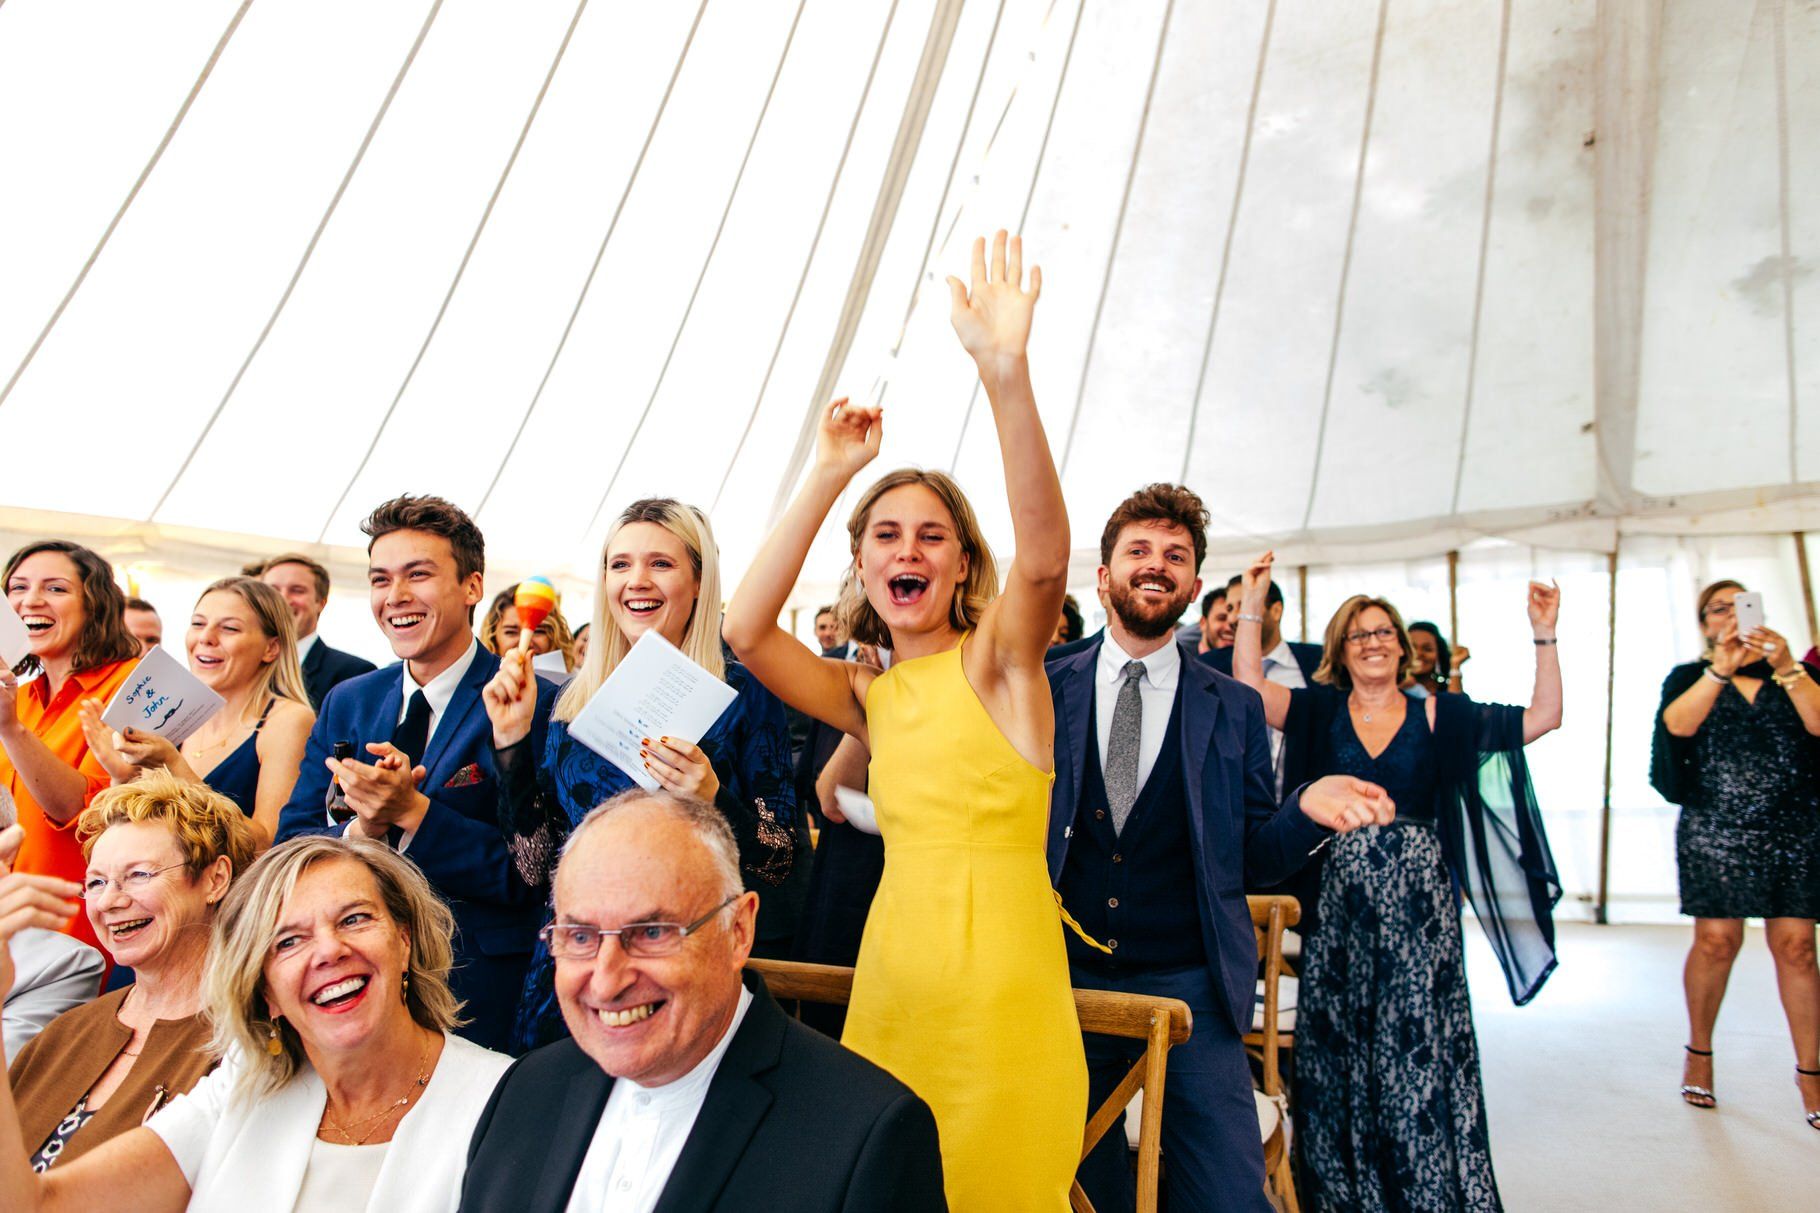 Much dancing and hilarity of wedding guests during wedding ceremony at home